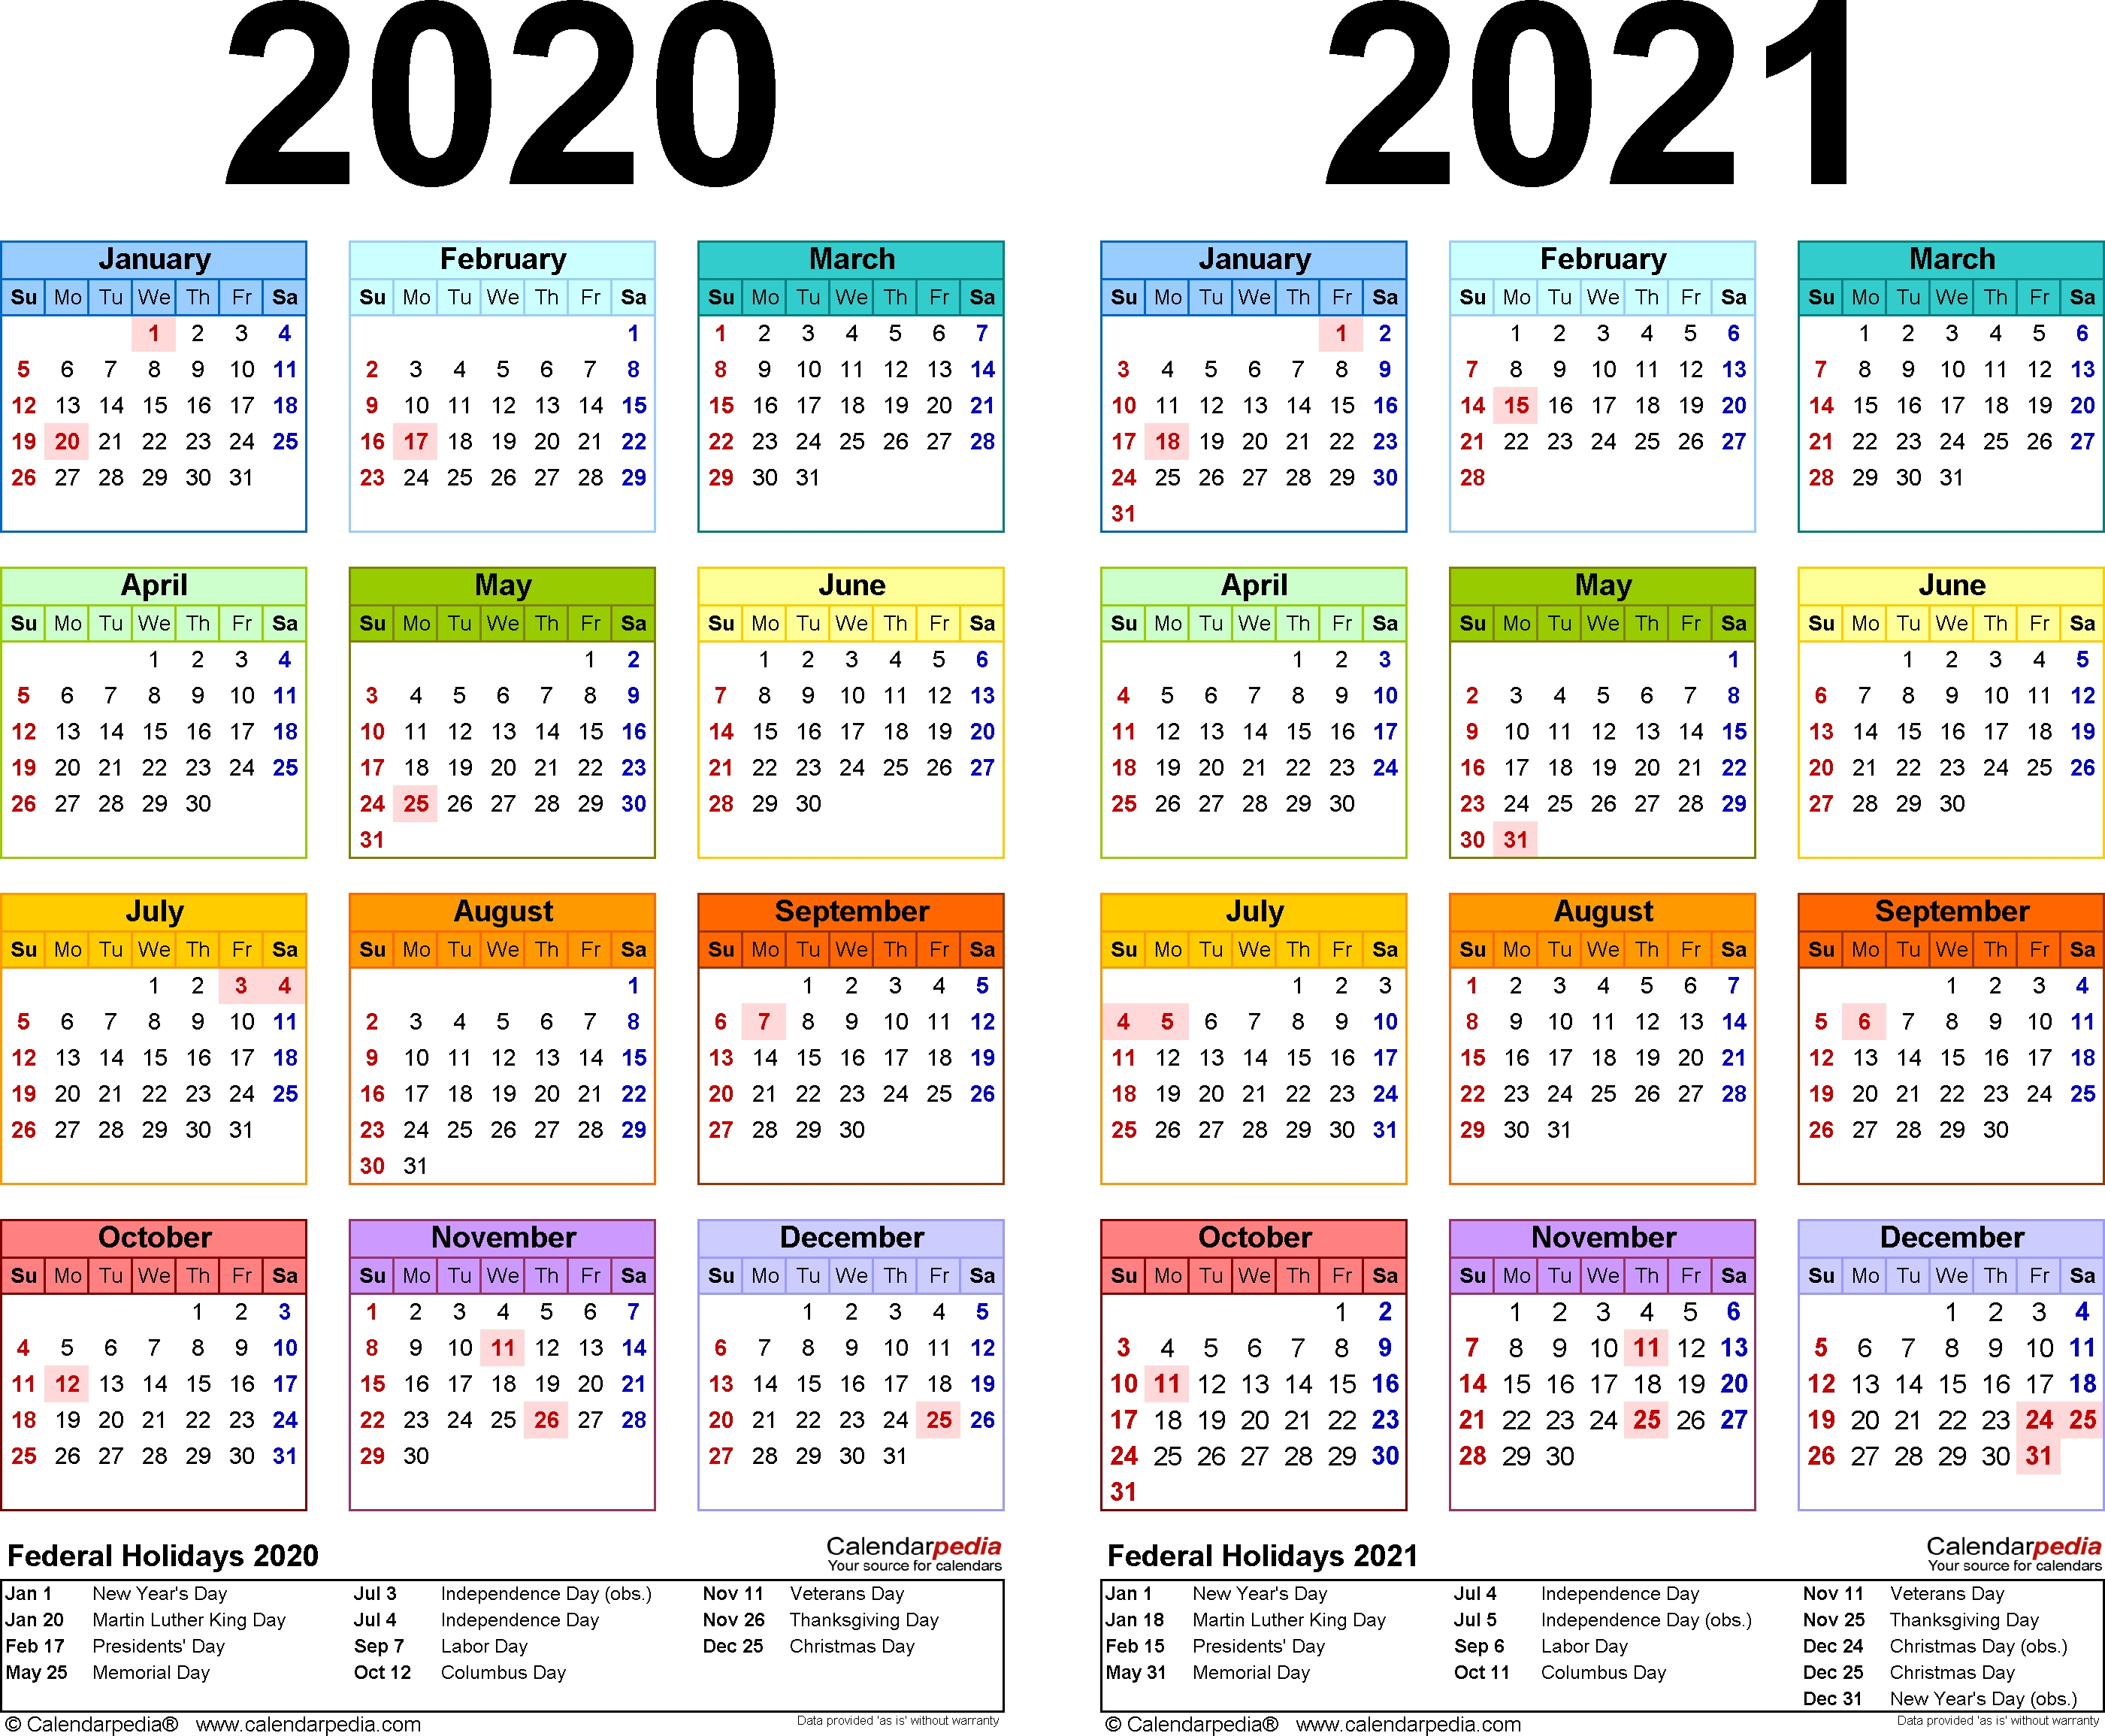 2020-2021 Calendar - Free Printable Two-Year Pdf Calendars for Free Yearly 2019, 2020 2021 Calendar